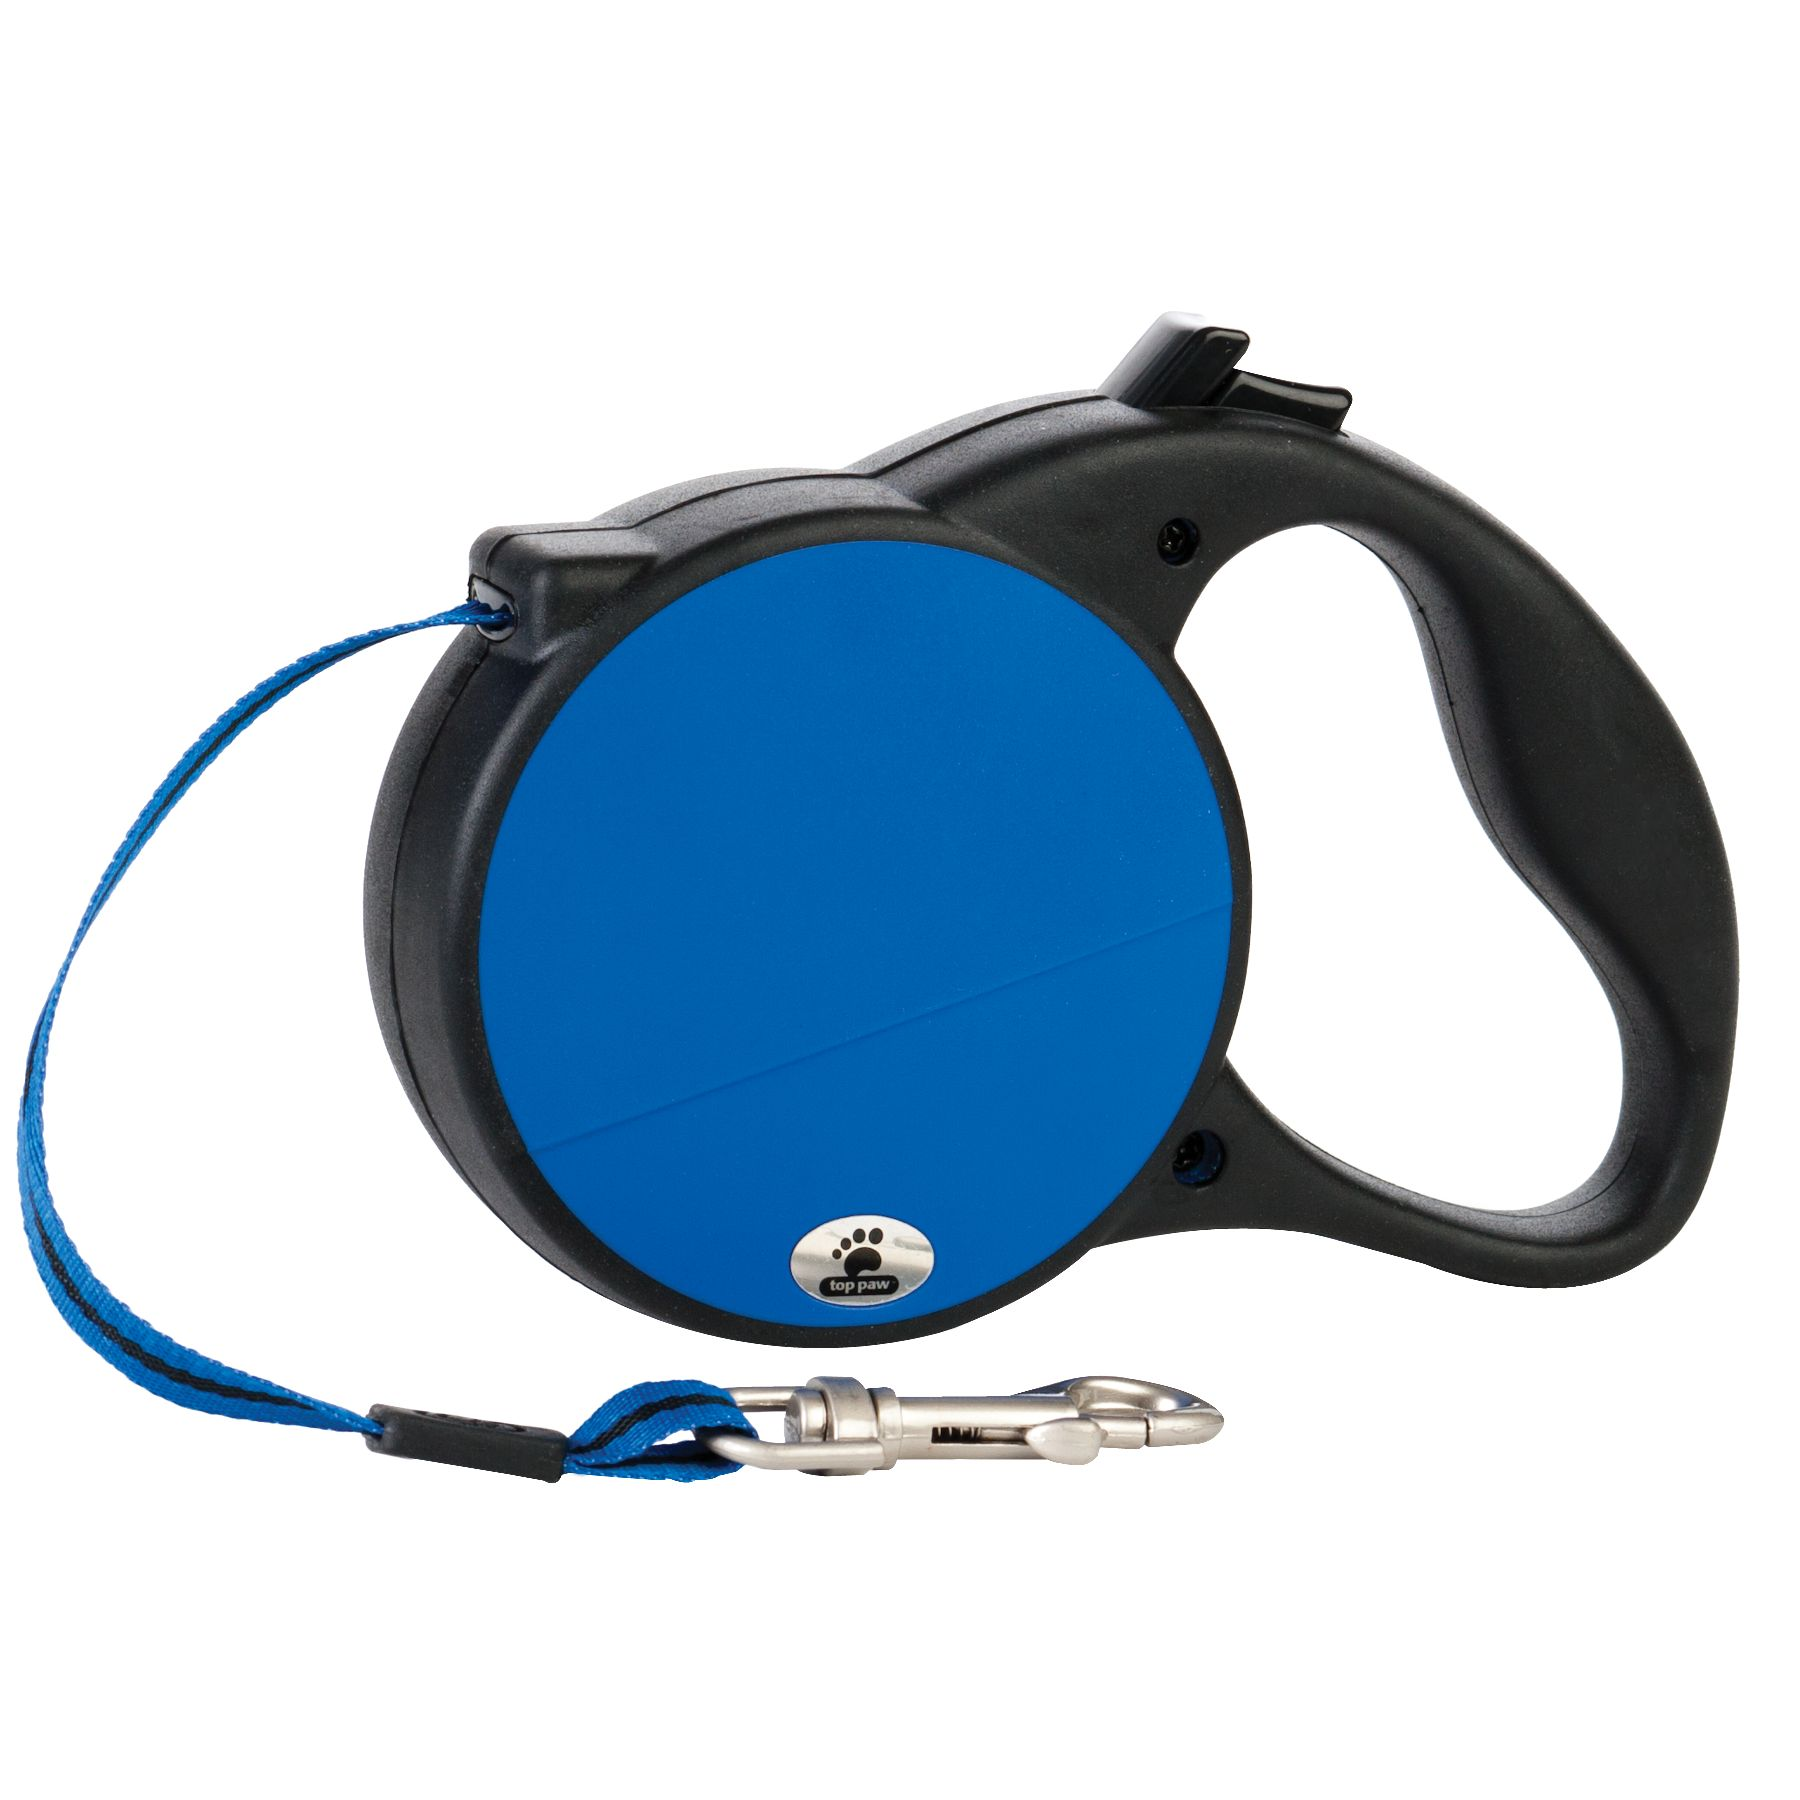 "Top Paw Retractable Dog Leash size: 6.3""L x 2.76""W, Blue 5195539"